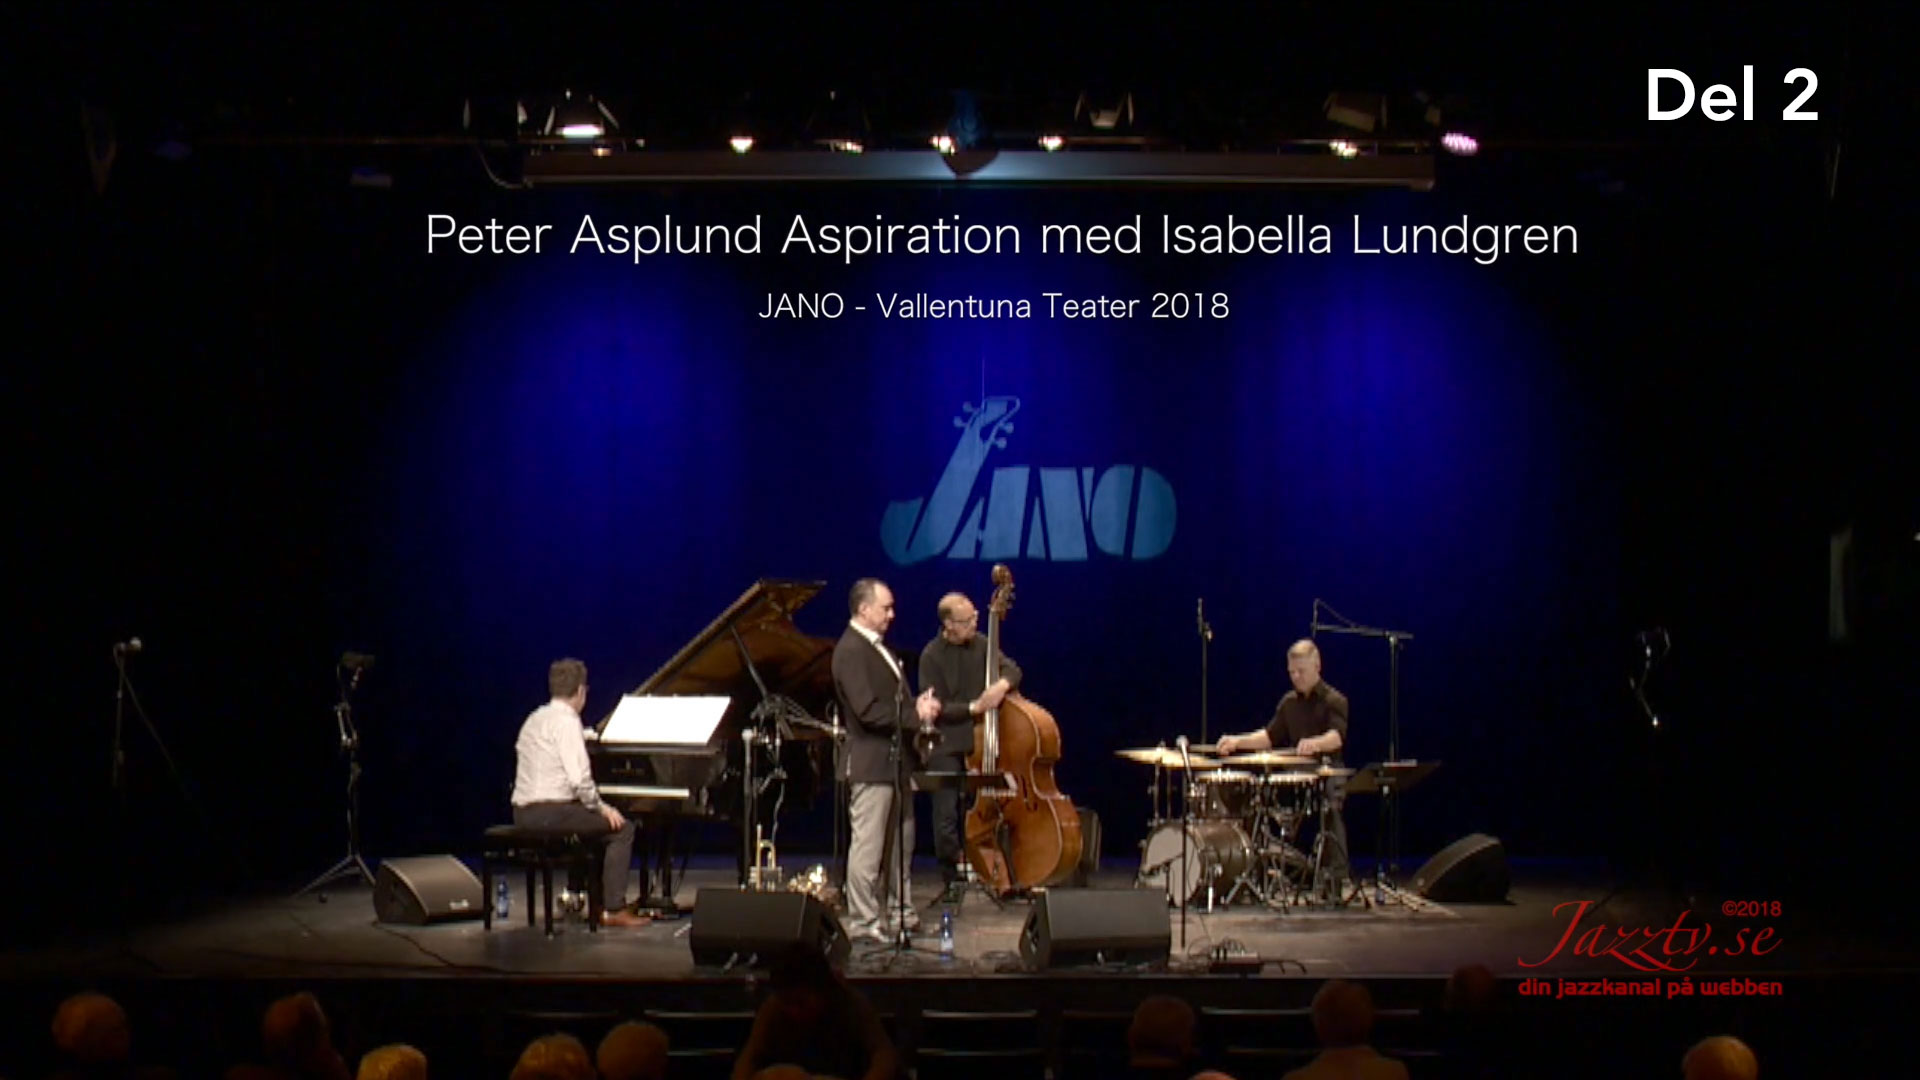 Peter Asplund Aspiration with Isabella Lundgren